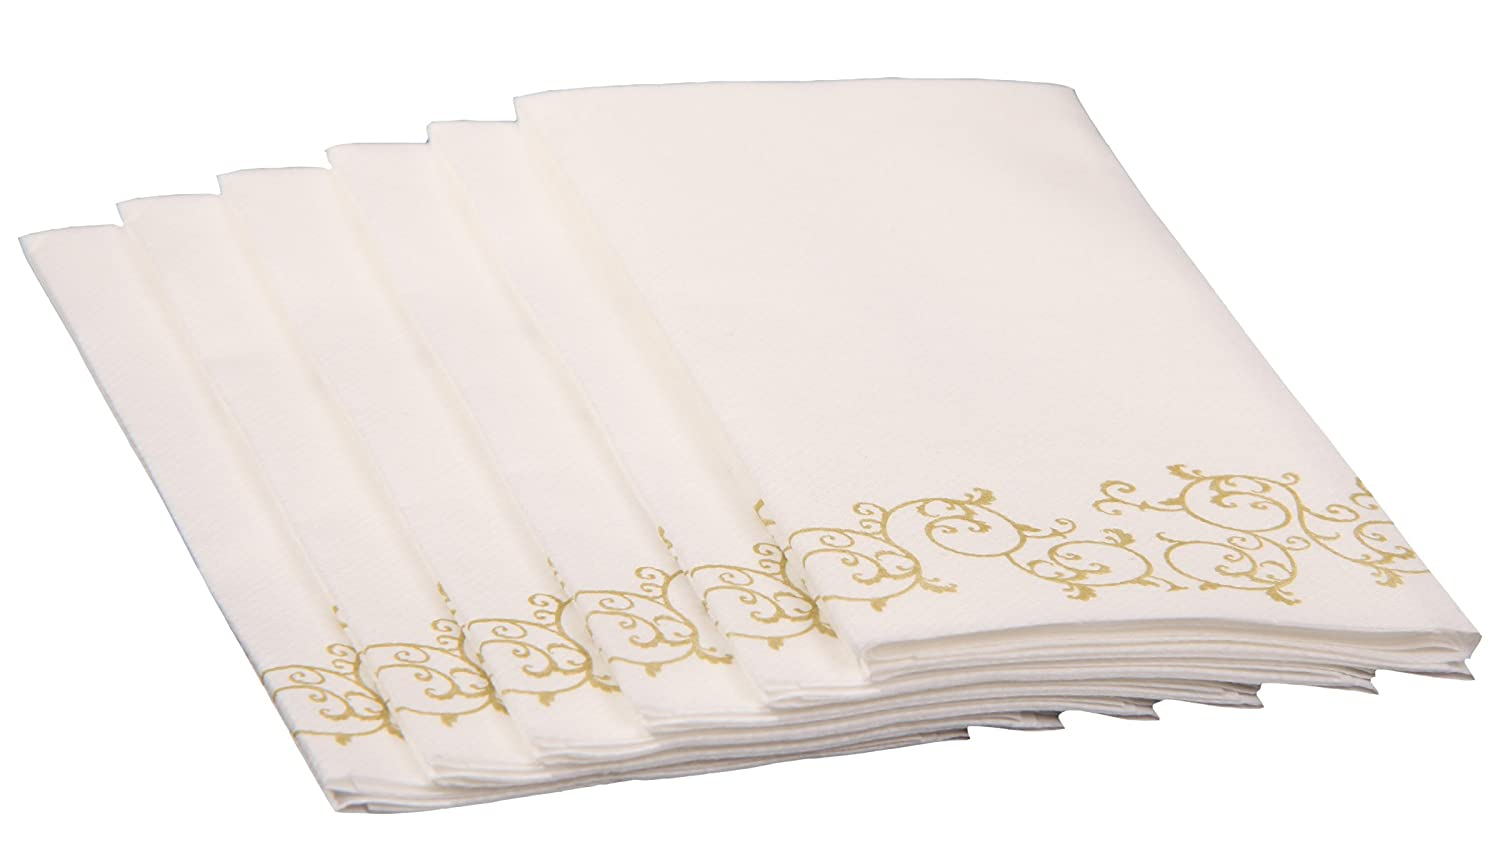 SimuLinen Hand Towels - Like Linen, Great for Guest and Bathroom Use, Decorative GOLD FLORAL Disposable 100ct